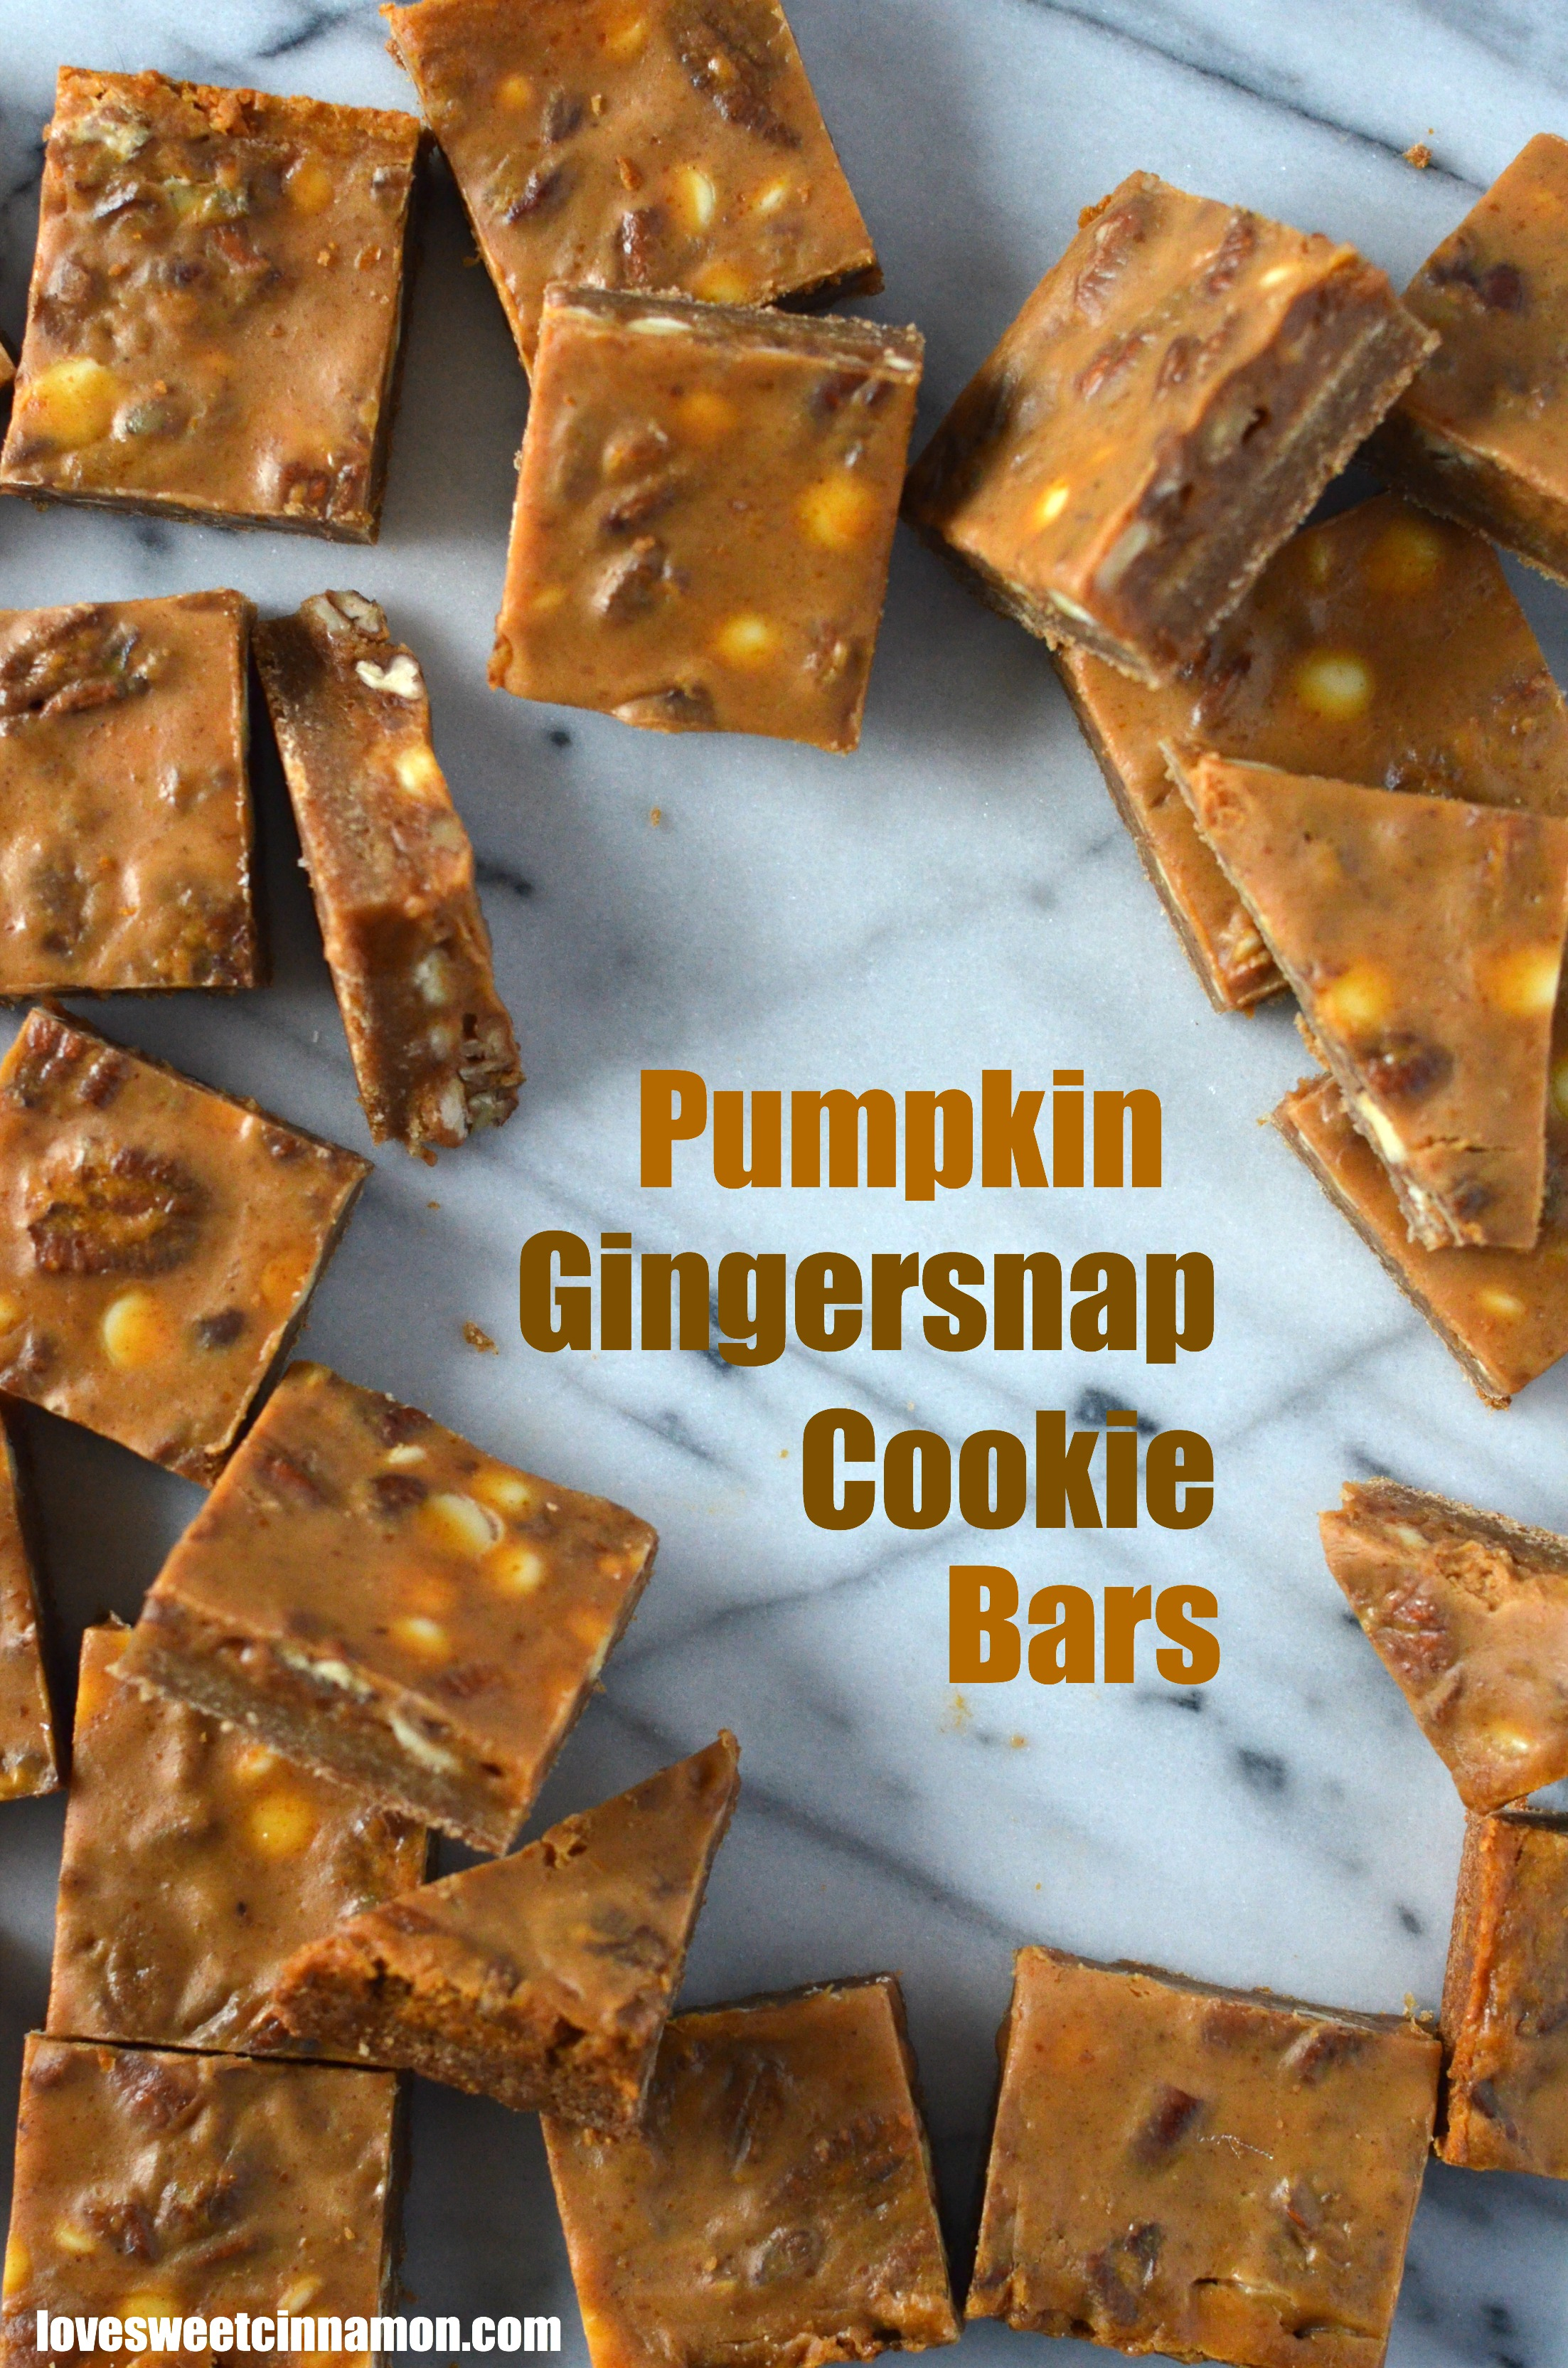 Pumpkin Gingersnap Cookie Bars | Sweet Cinnamon